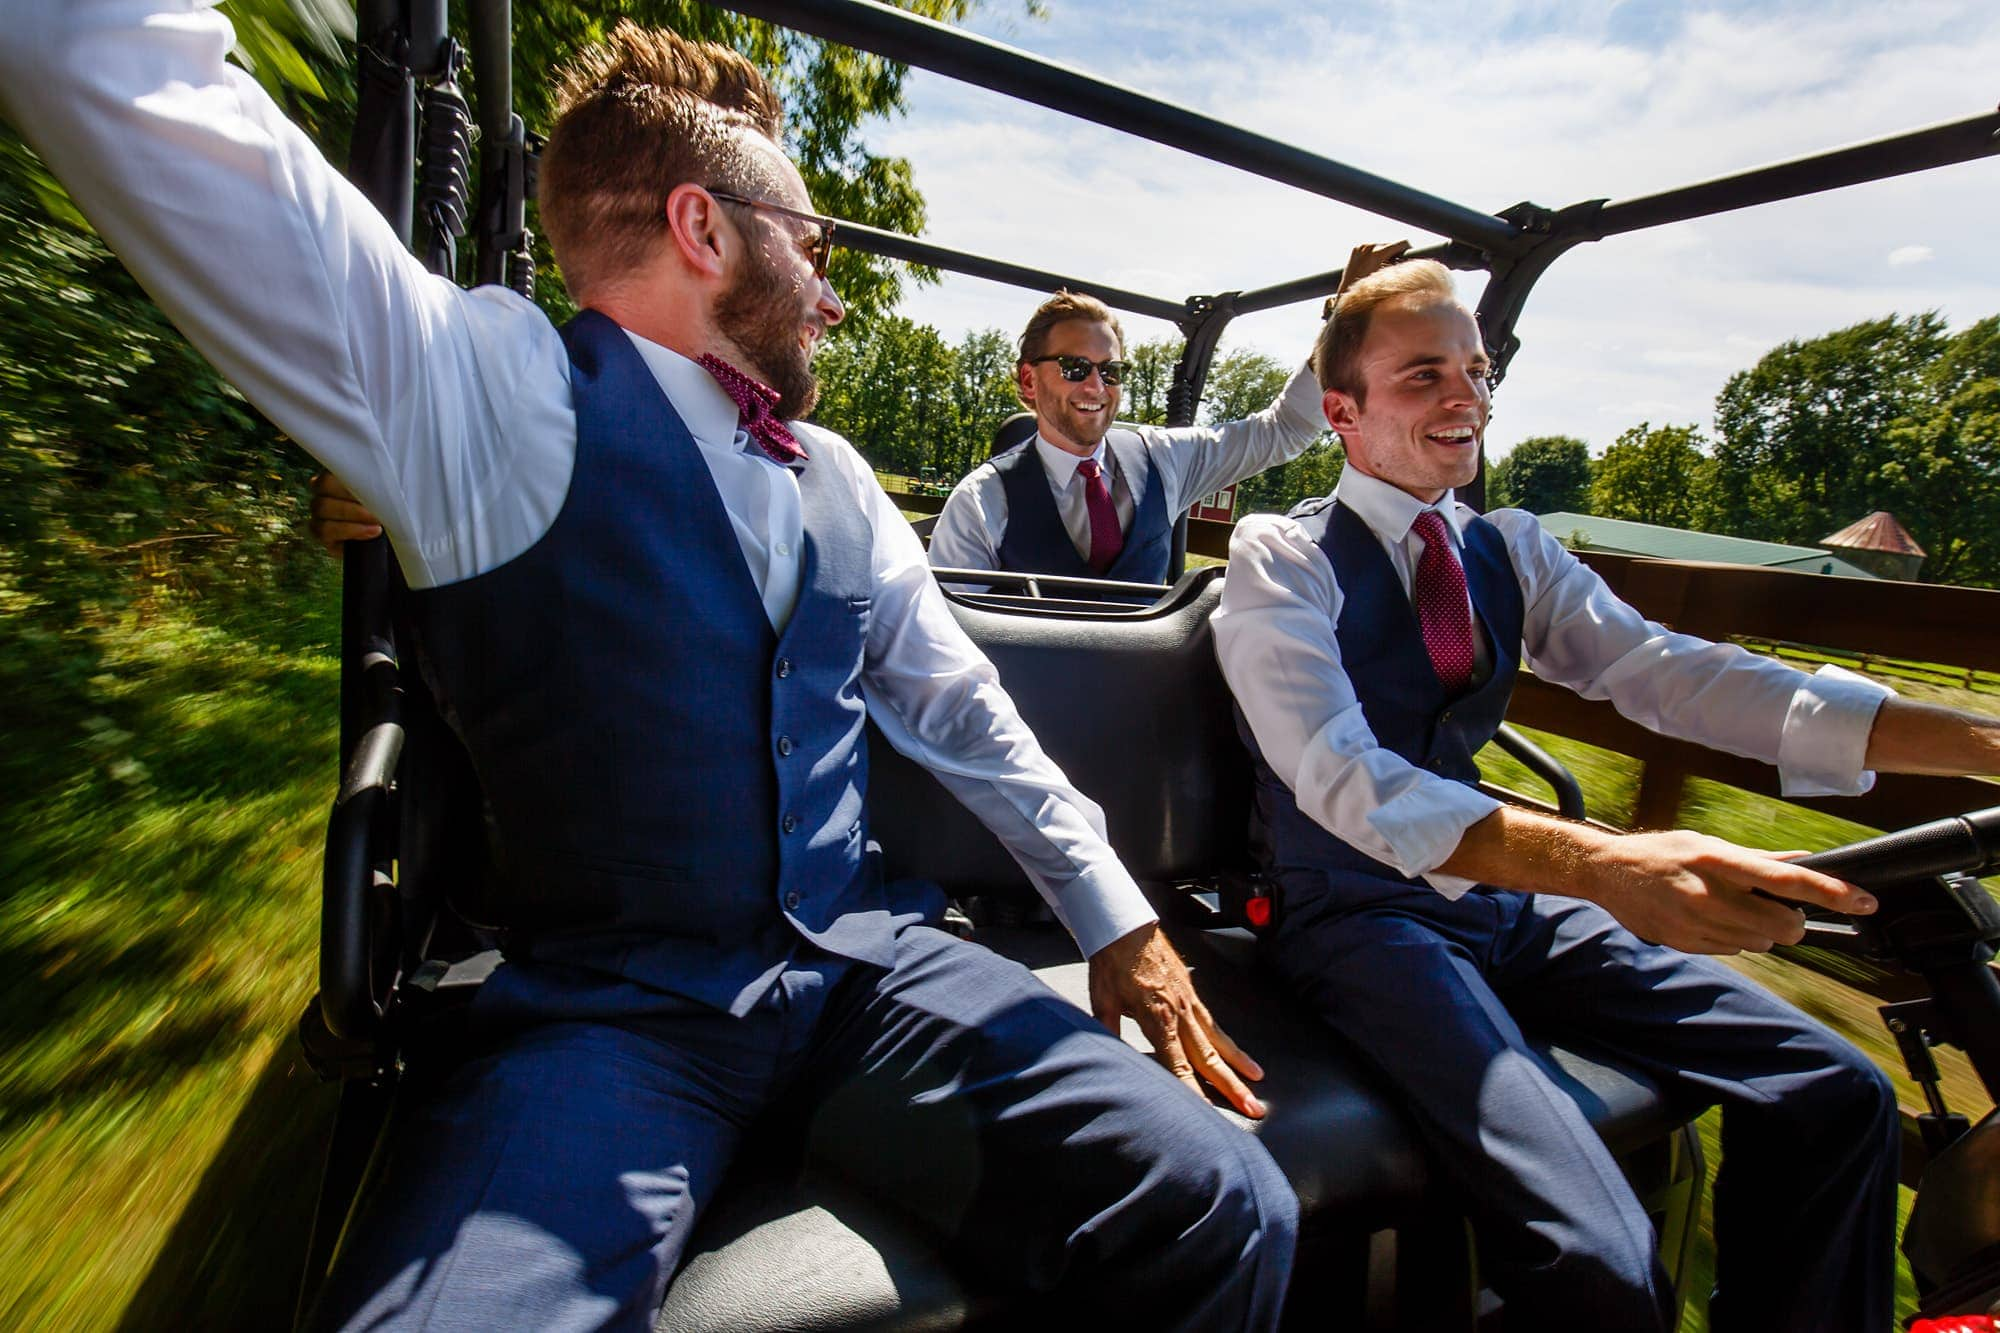 Groomsmen ride in an ATV around a farm near Willow Harbor Vineyards in Three Oaks, Michigan in Spetember.